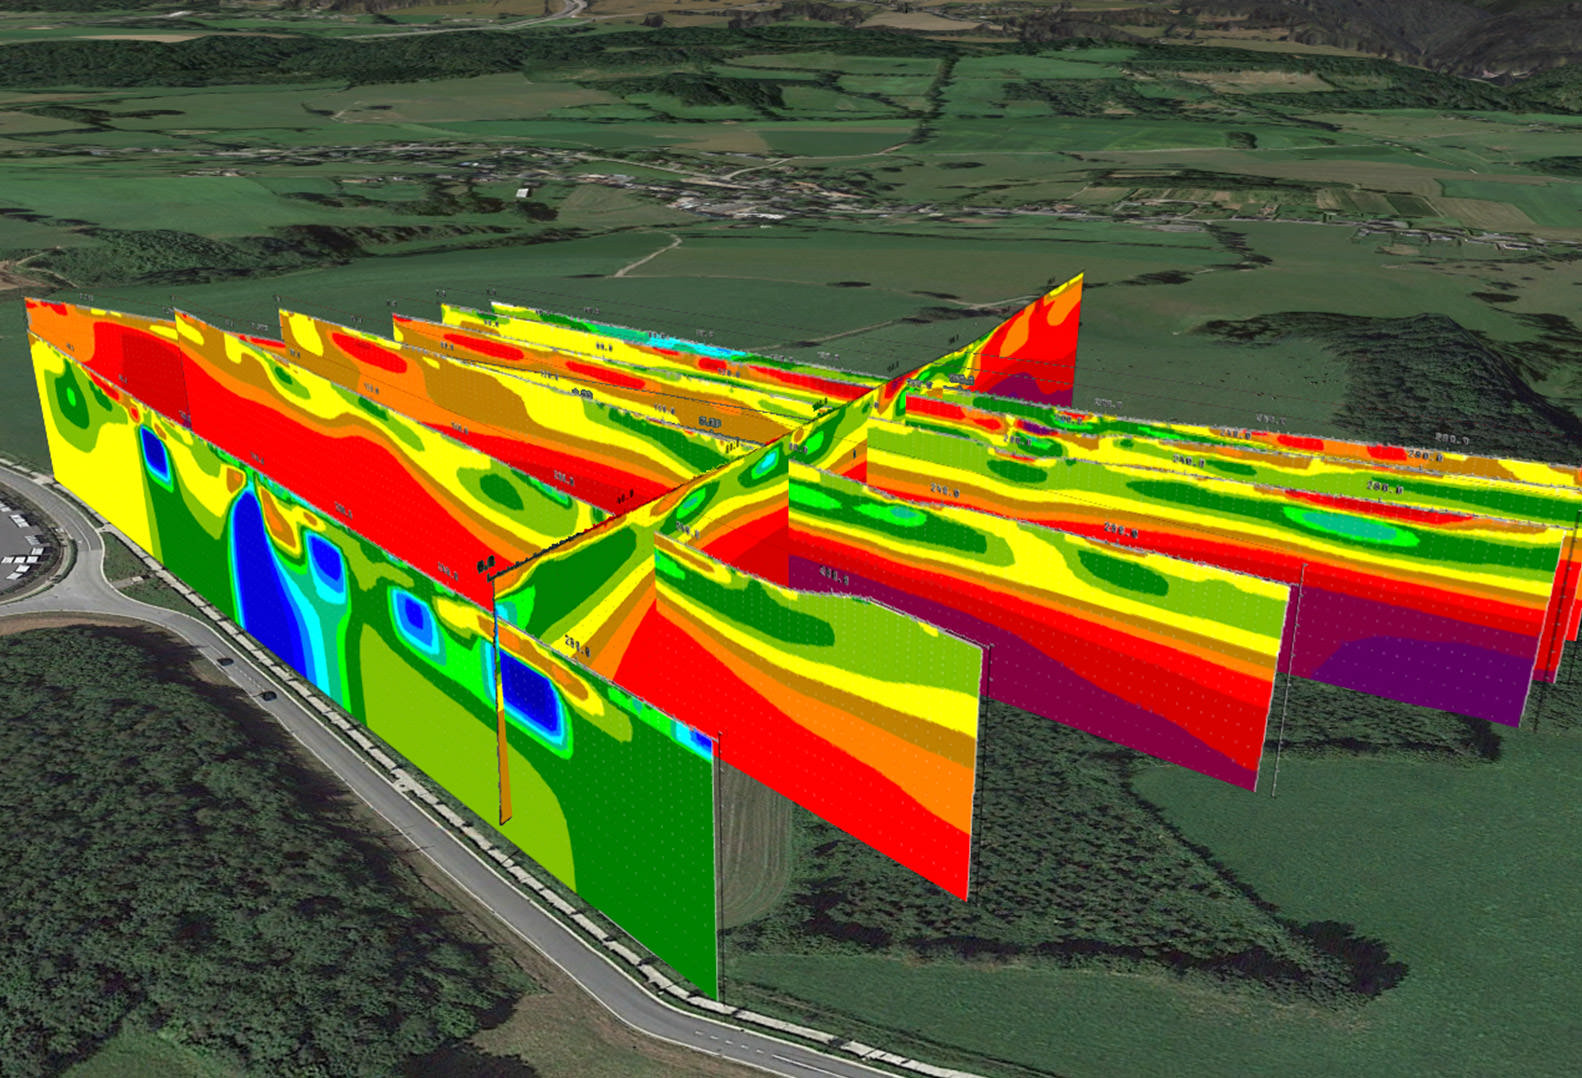 Image of a Preliminary Geophysical model for the extension of a quarry in Belgium